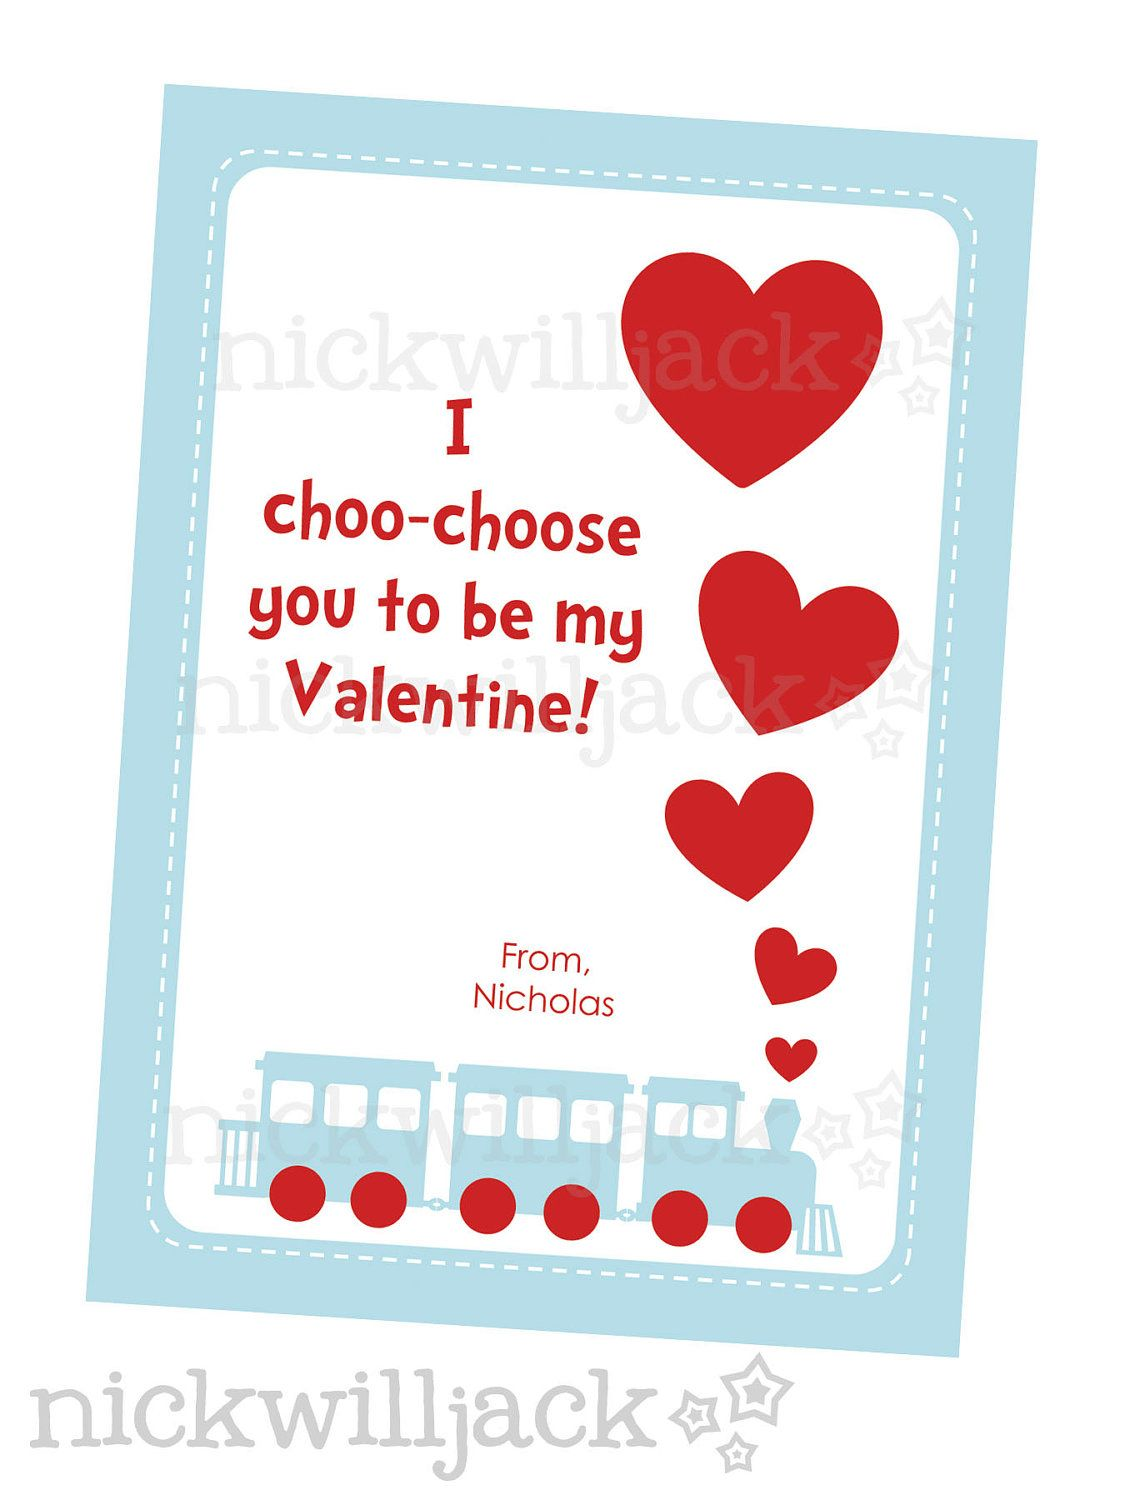 childrens printable train valentine card 700 via etsy - Etsy Valentines Cards